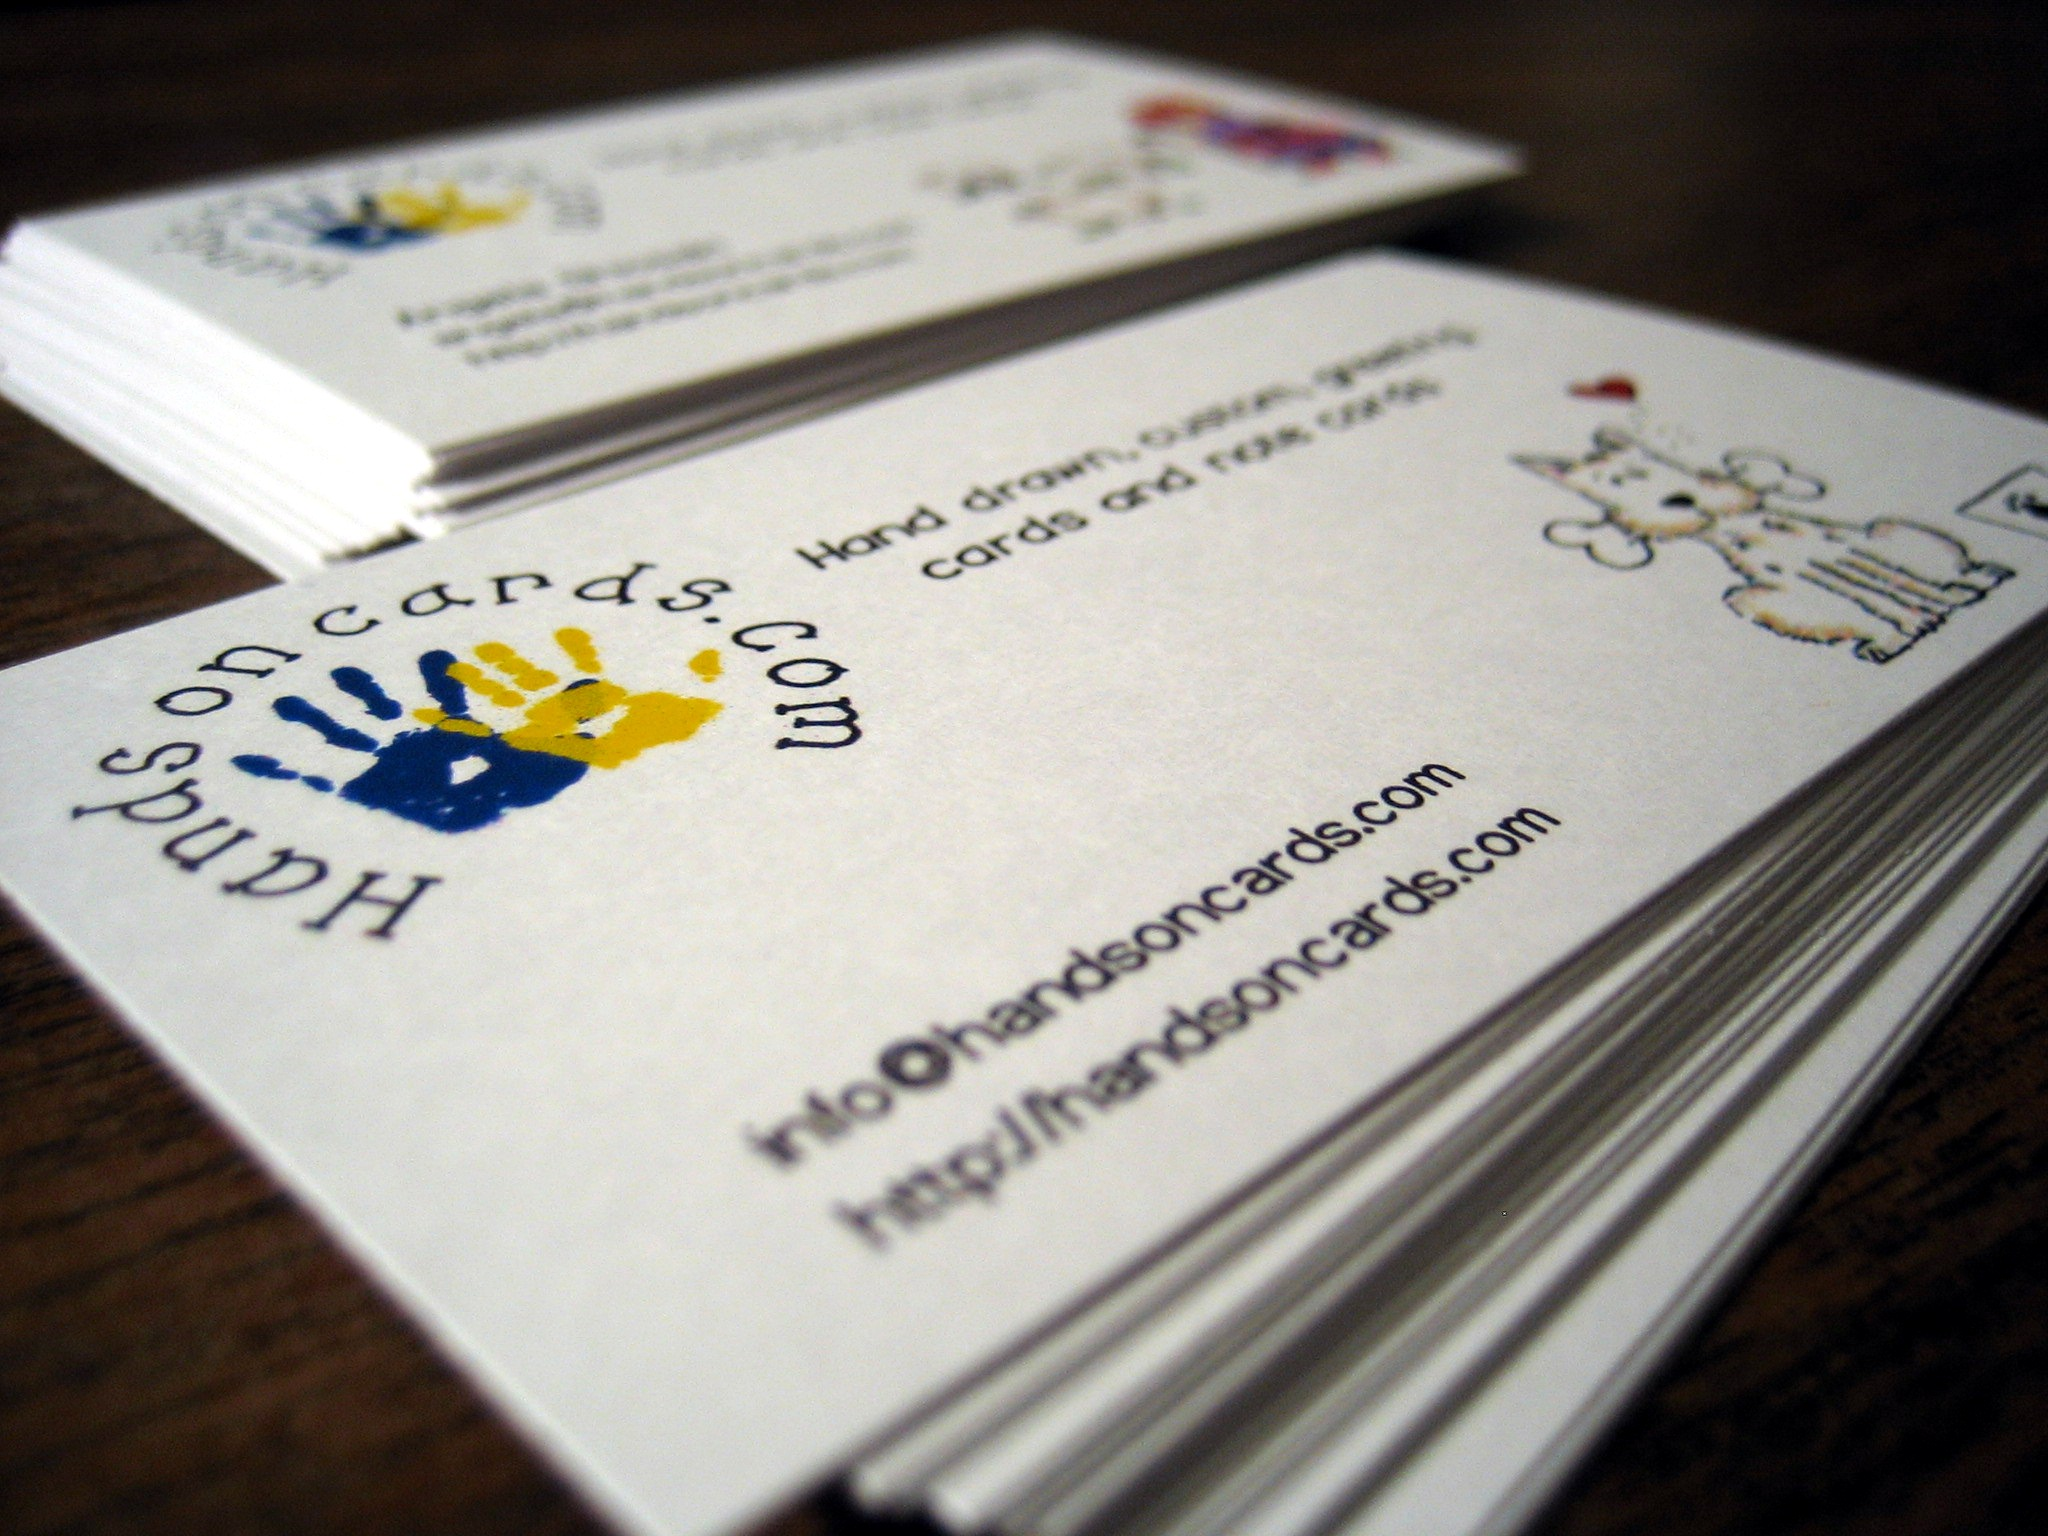 Bussiness Cards - Overnight Printers